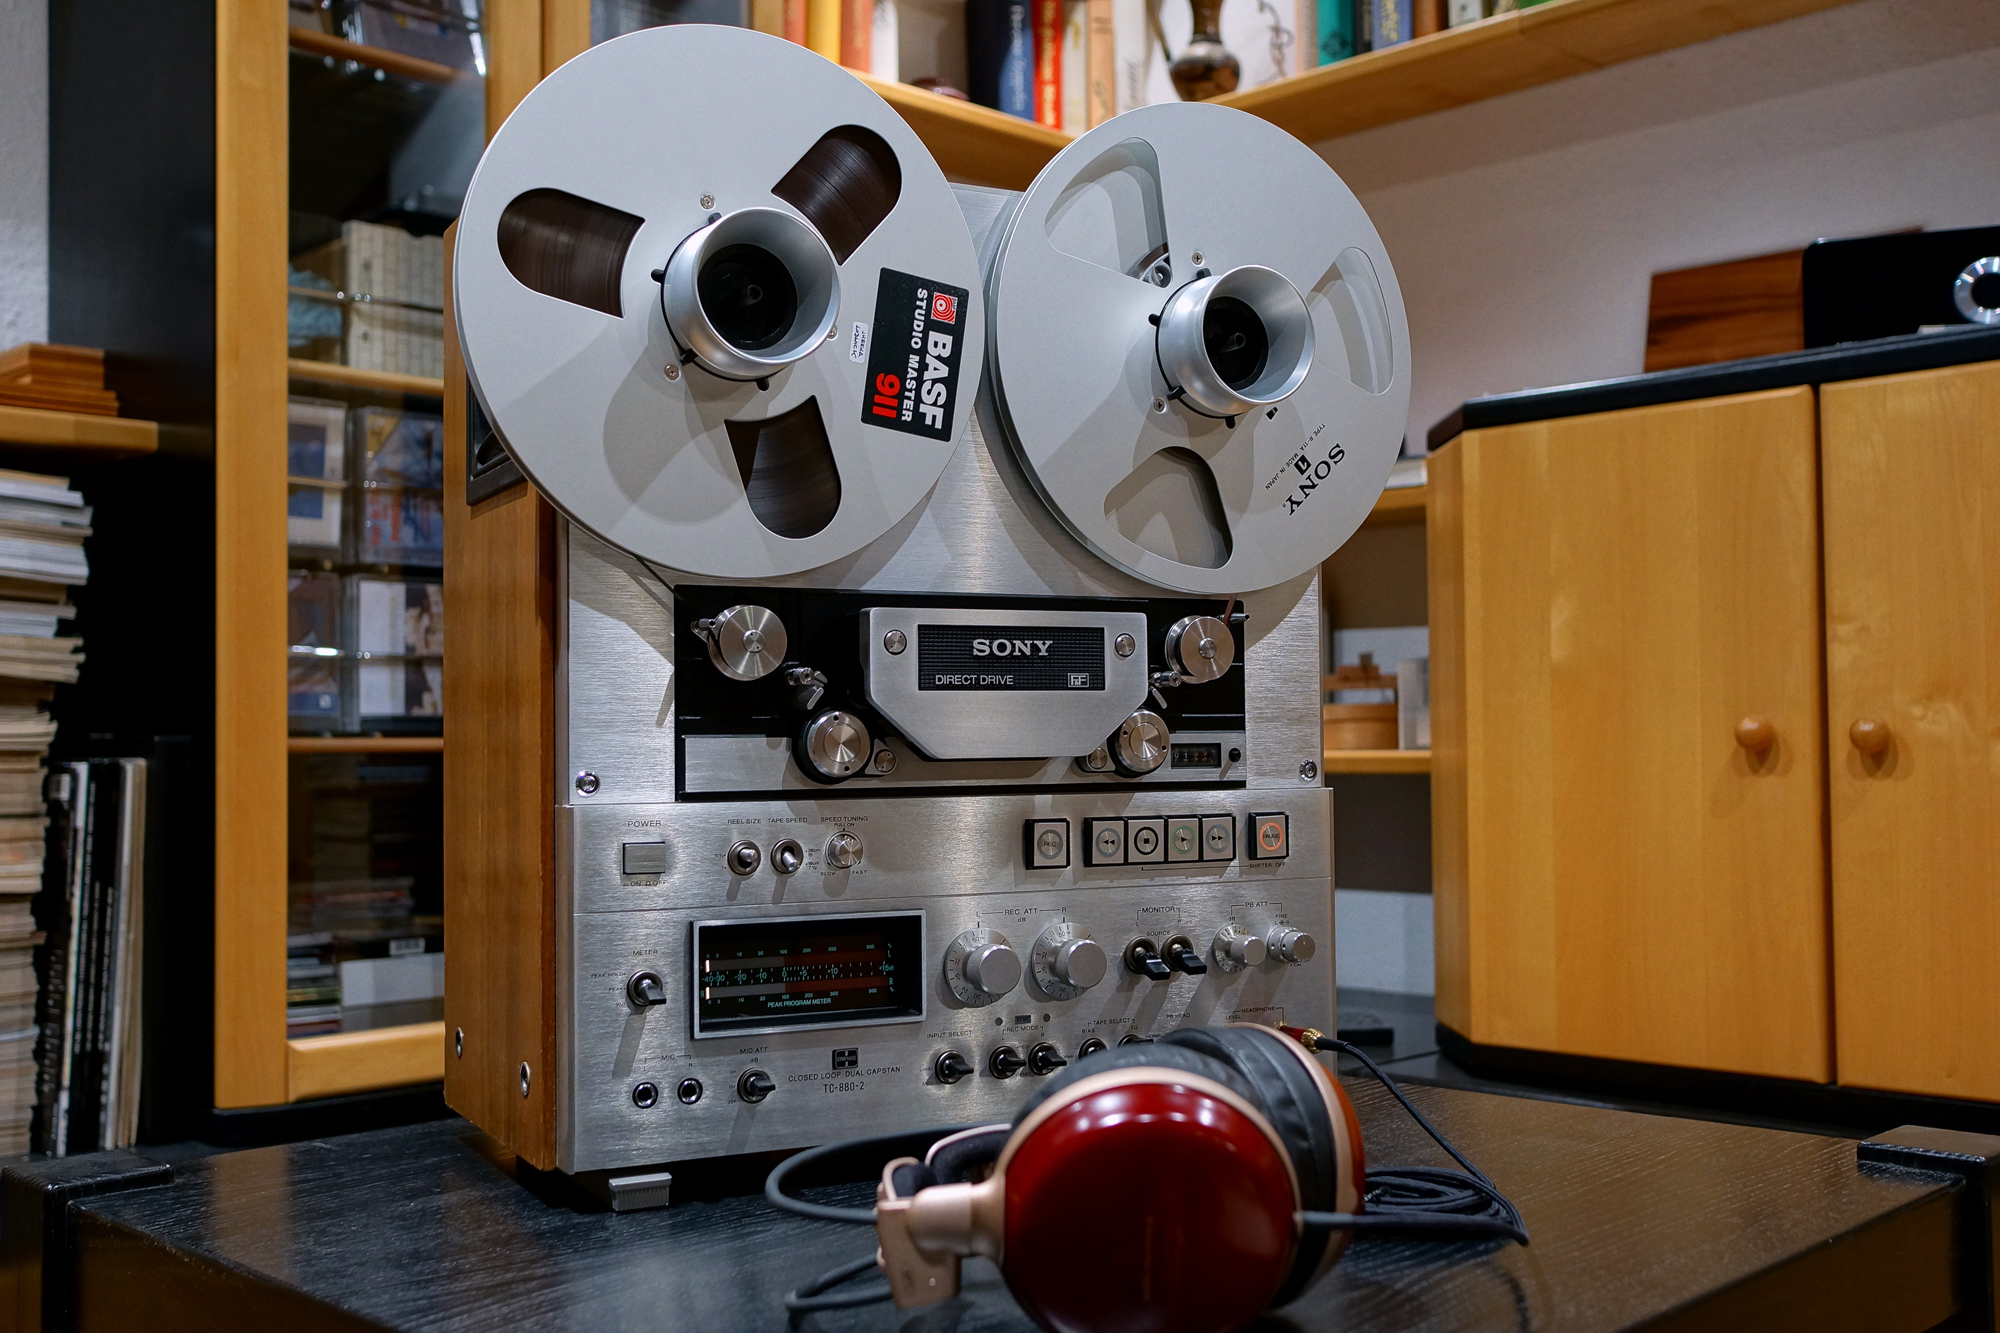 A reel-to-reel tape machine